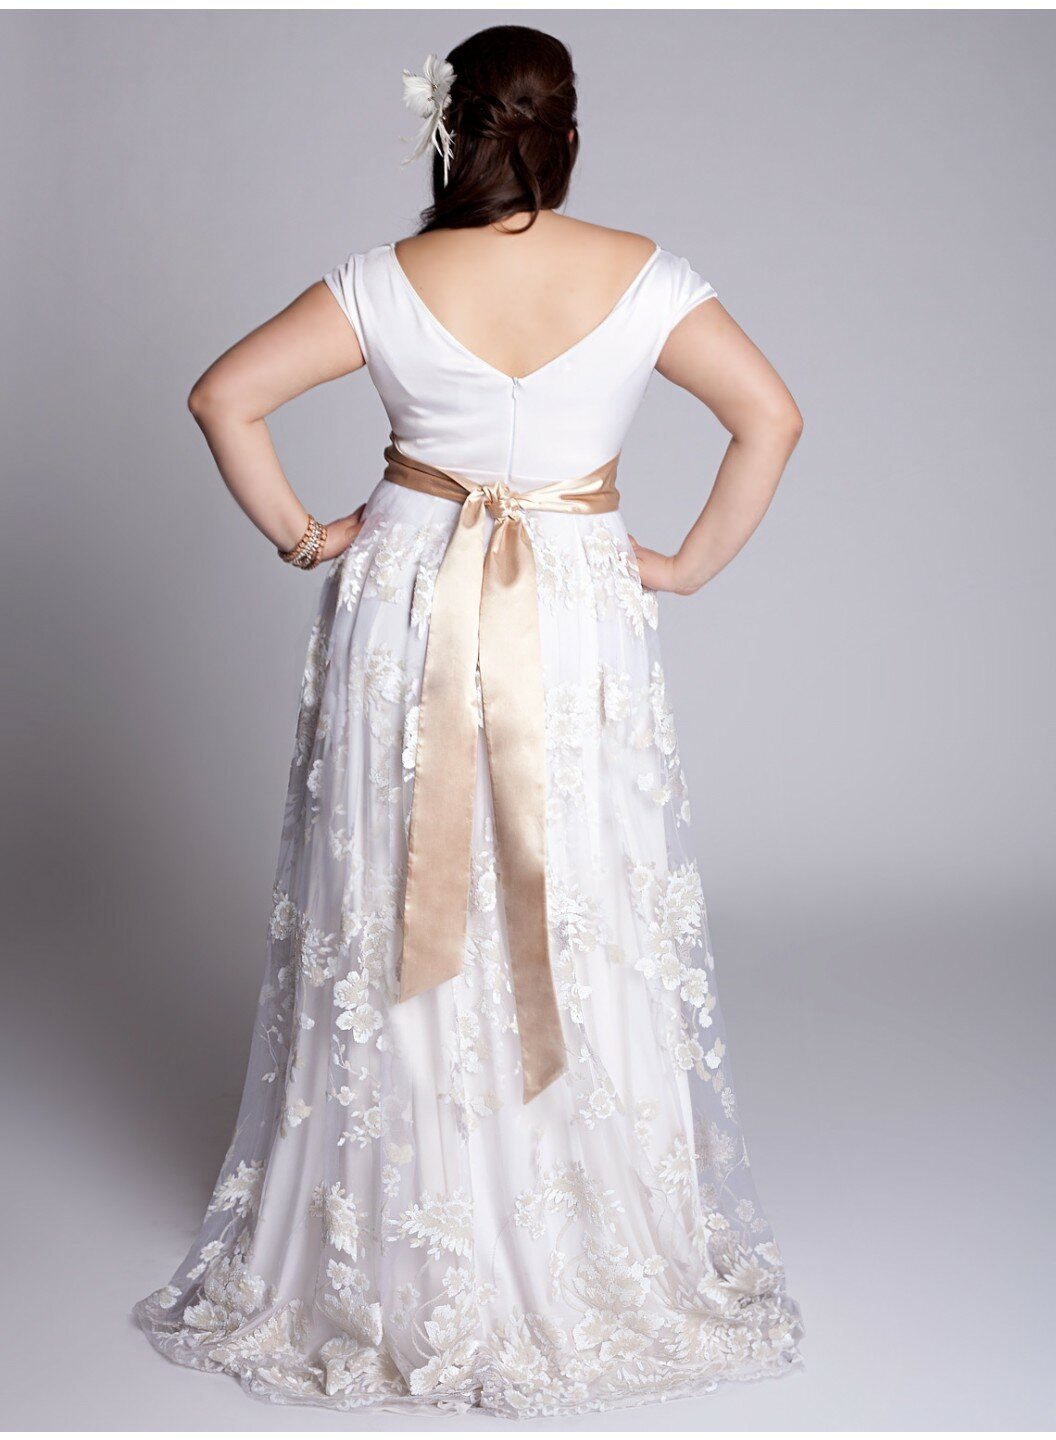 plus size colored wedding dresses pictures ideas guide